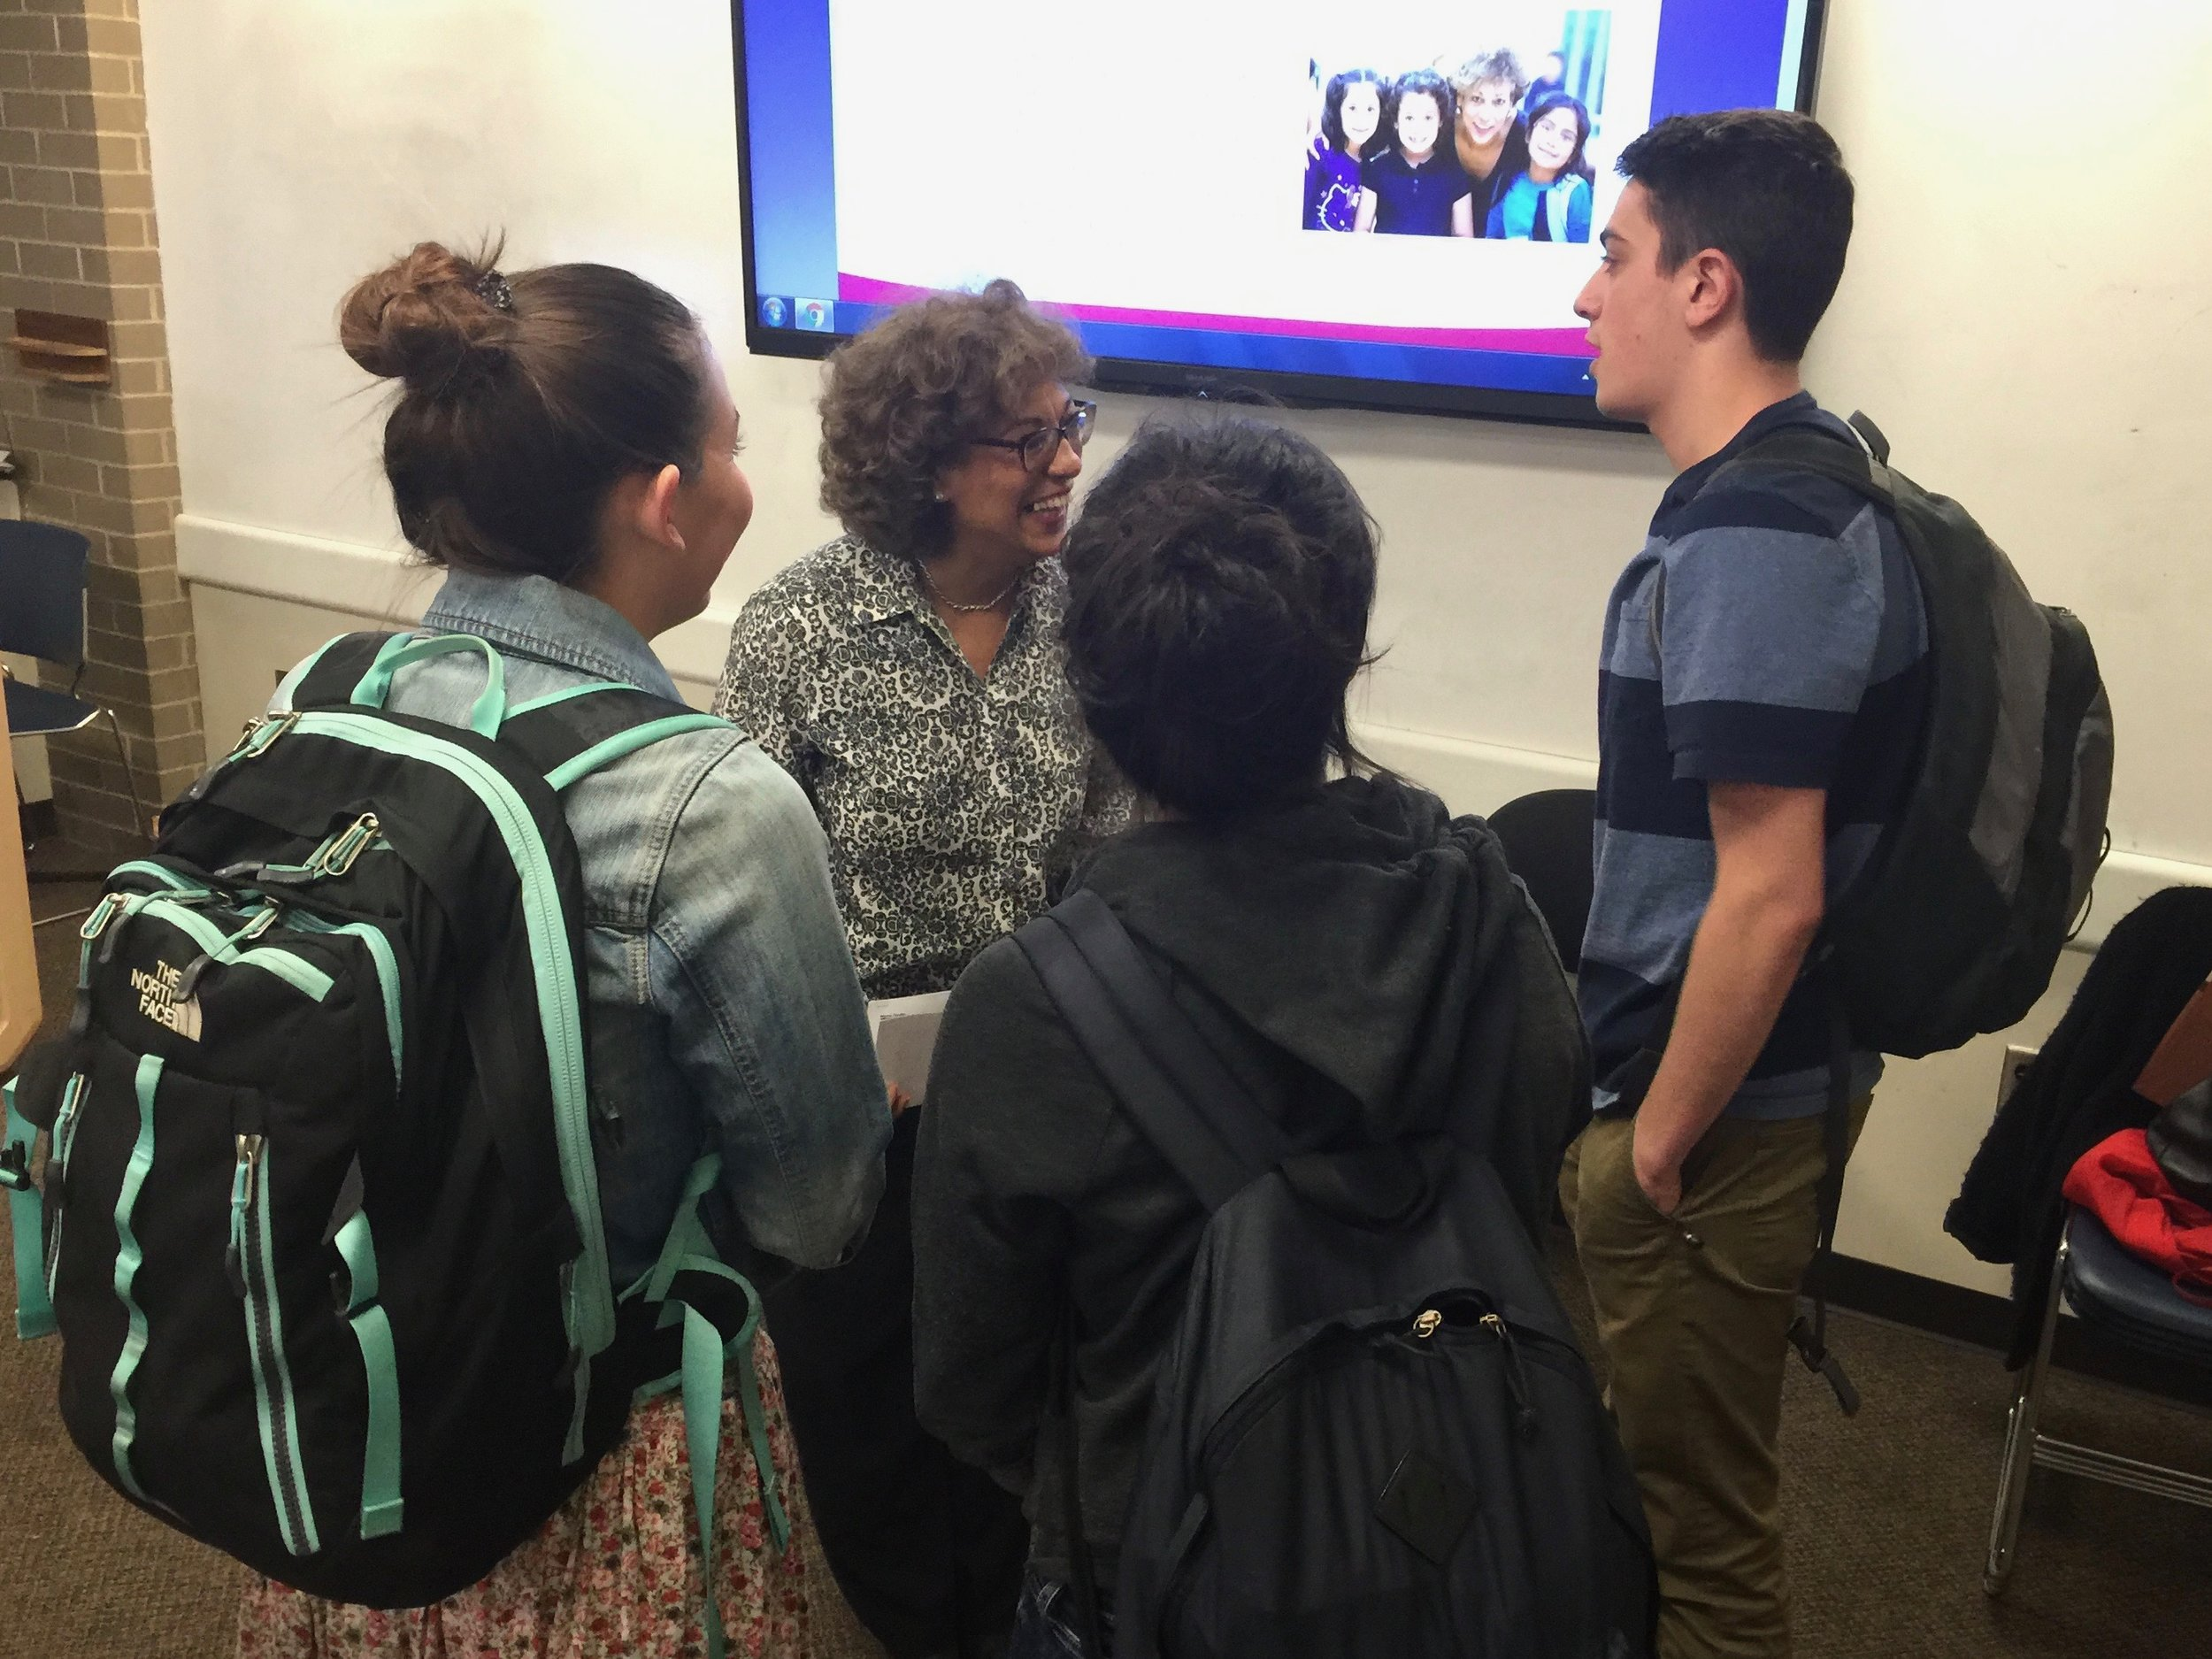 Students meet with the Executive Director of Centronia, an organization they are learning to write a grant for in HSSJ 3110: Nonprofit and organization administration